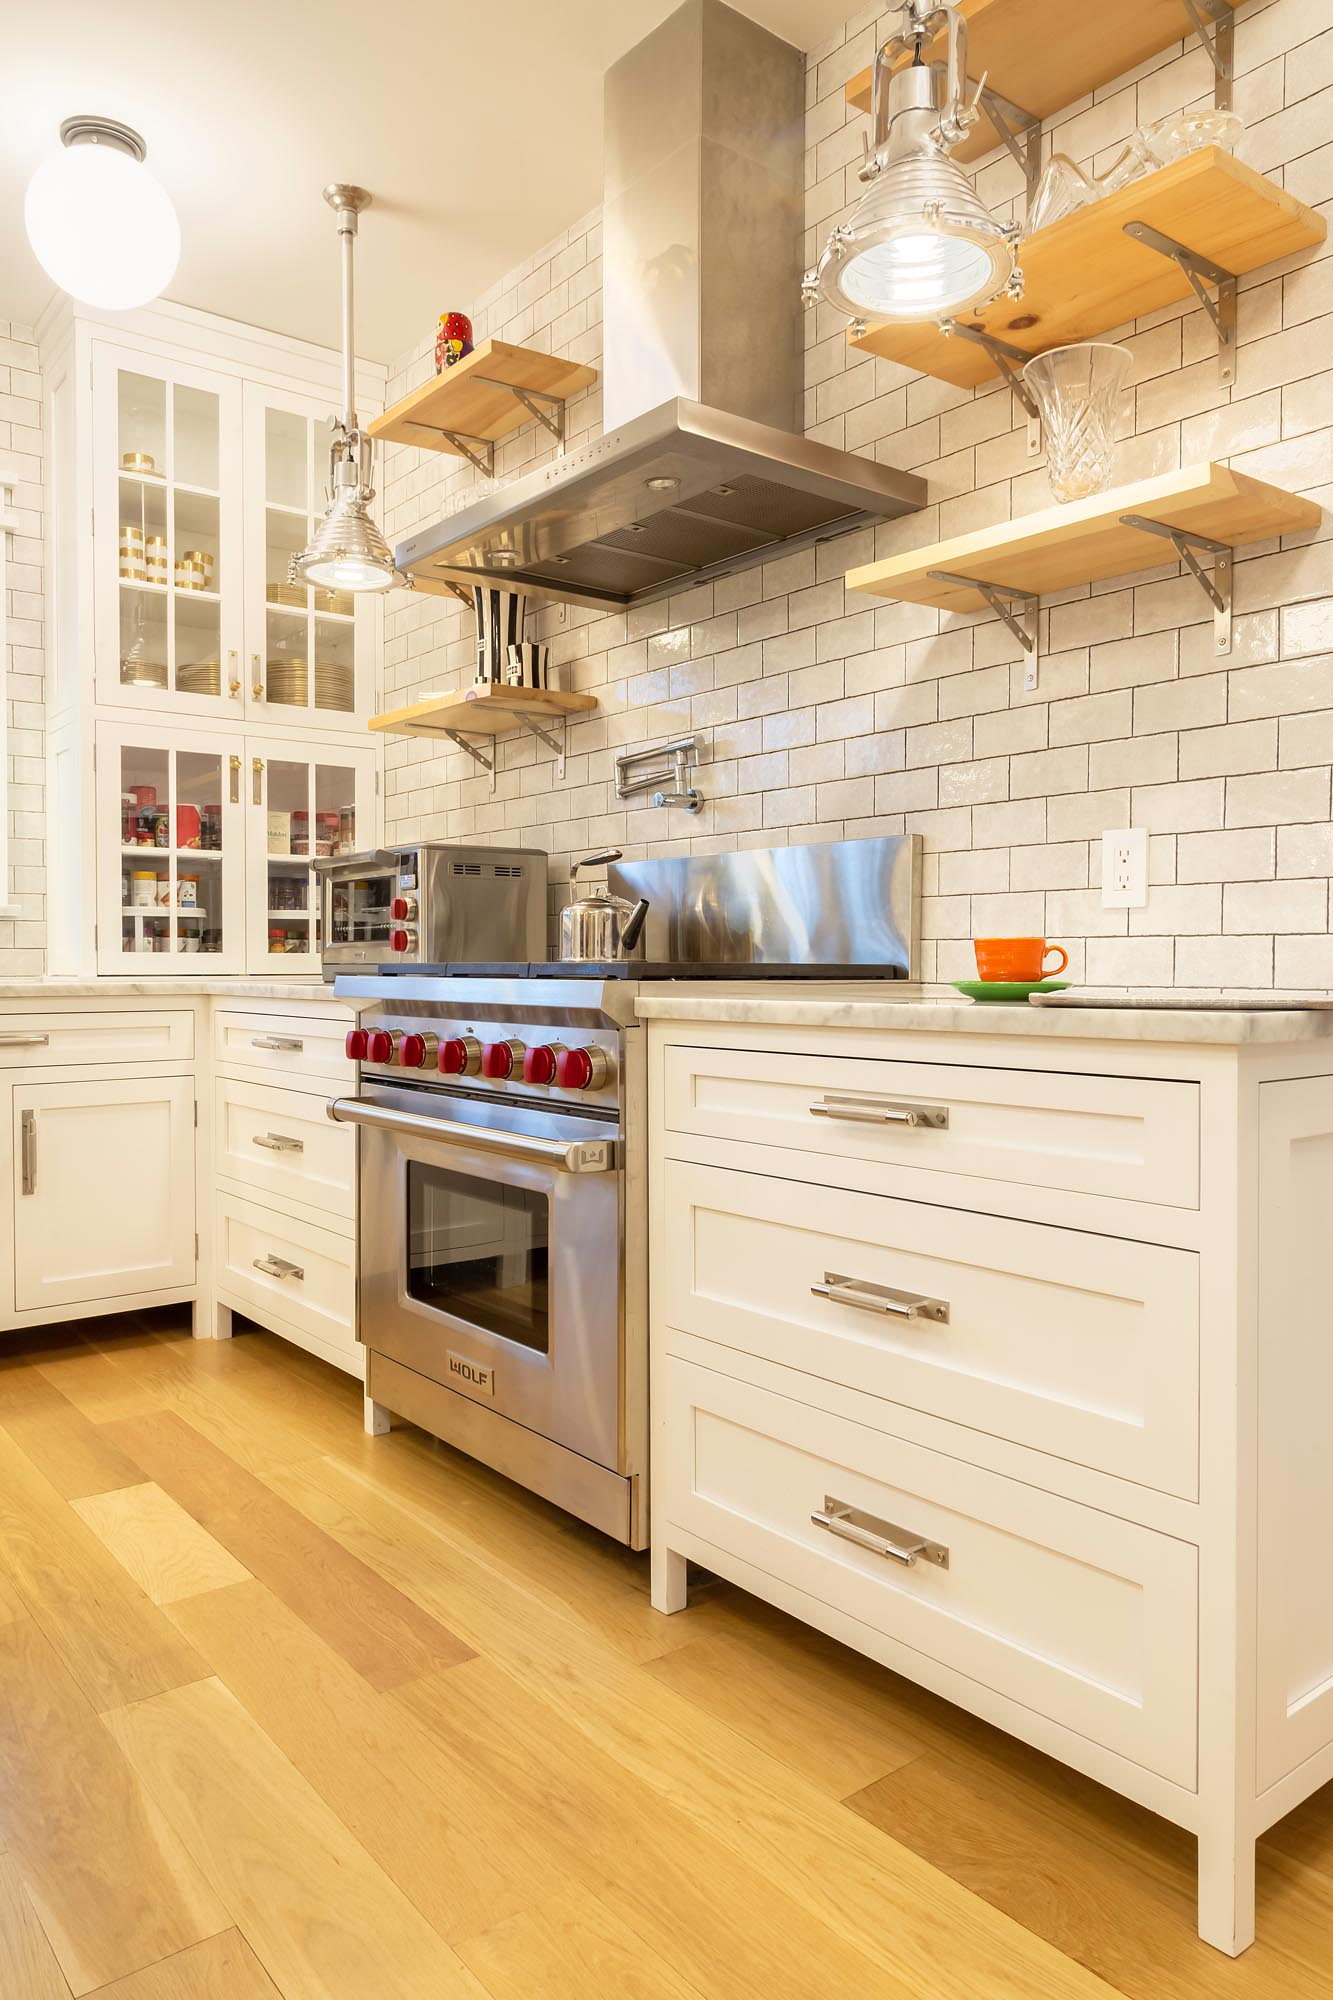 Transitional white kitchen with high end oven and stainless steel hood